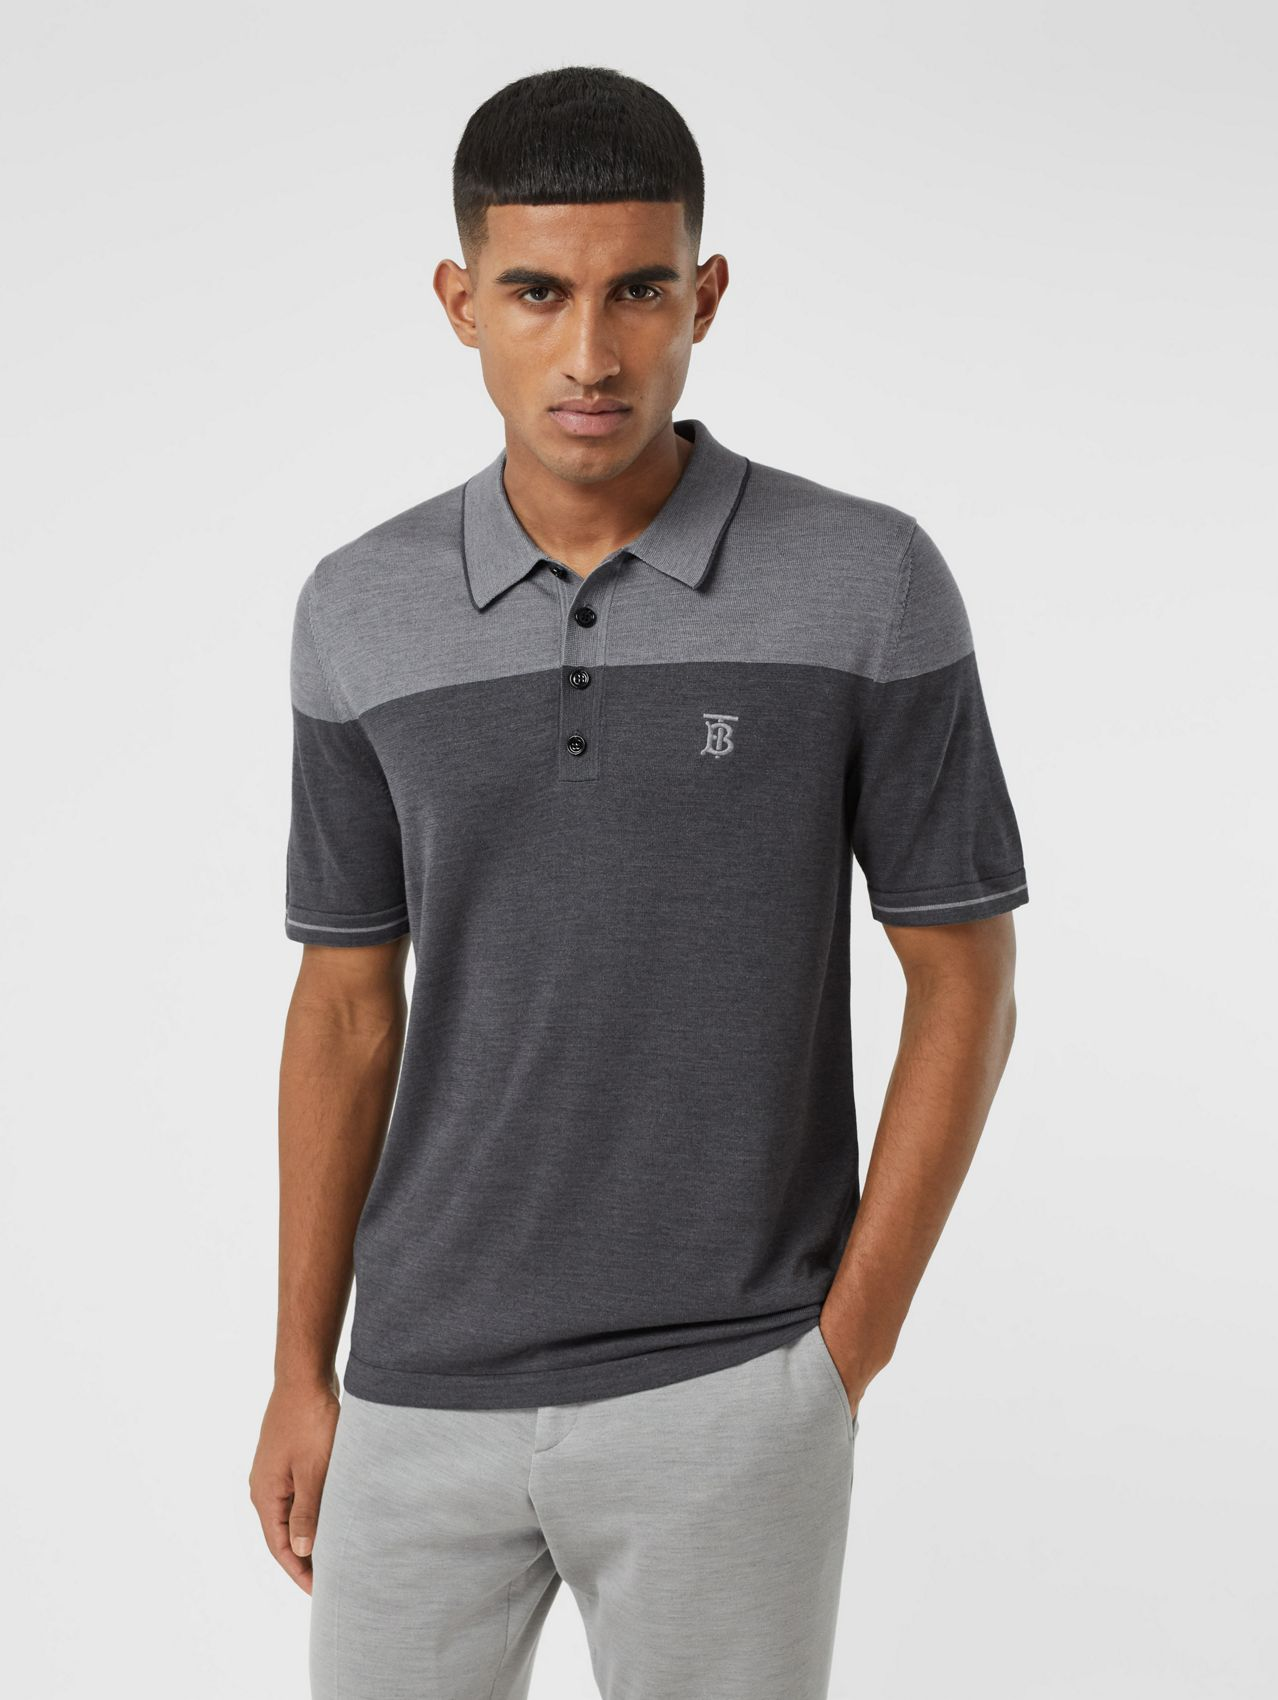 Monogram Motif Two-tone Silk Cashmere Polo Shirt in Charcoal